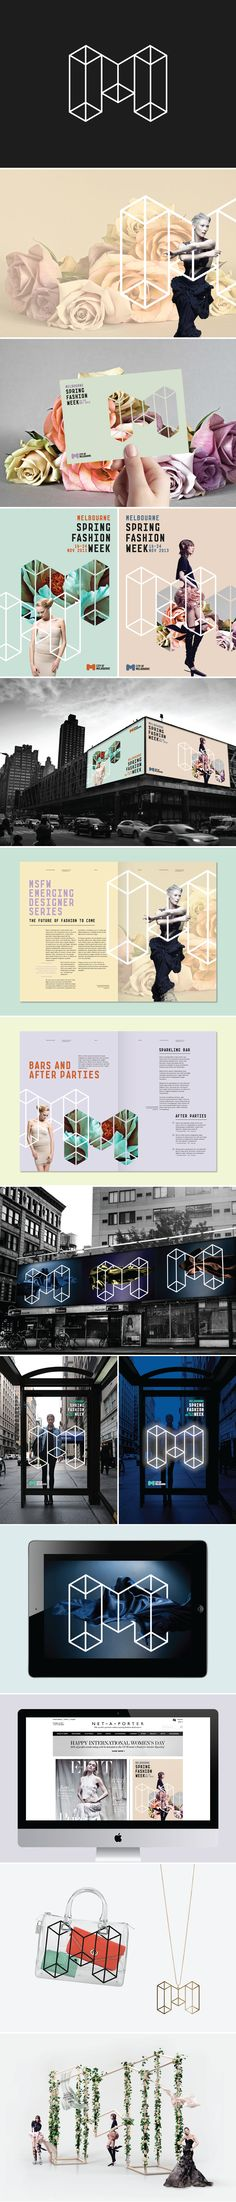 Melbourne Spring Fashion Week Concept & Guidelines on Behance                                                                                                                                                                                 More